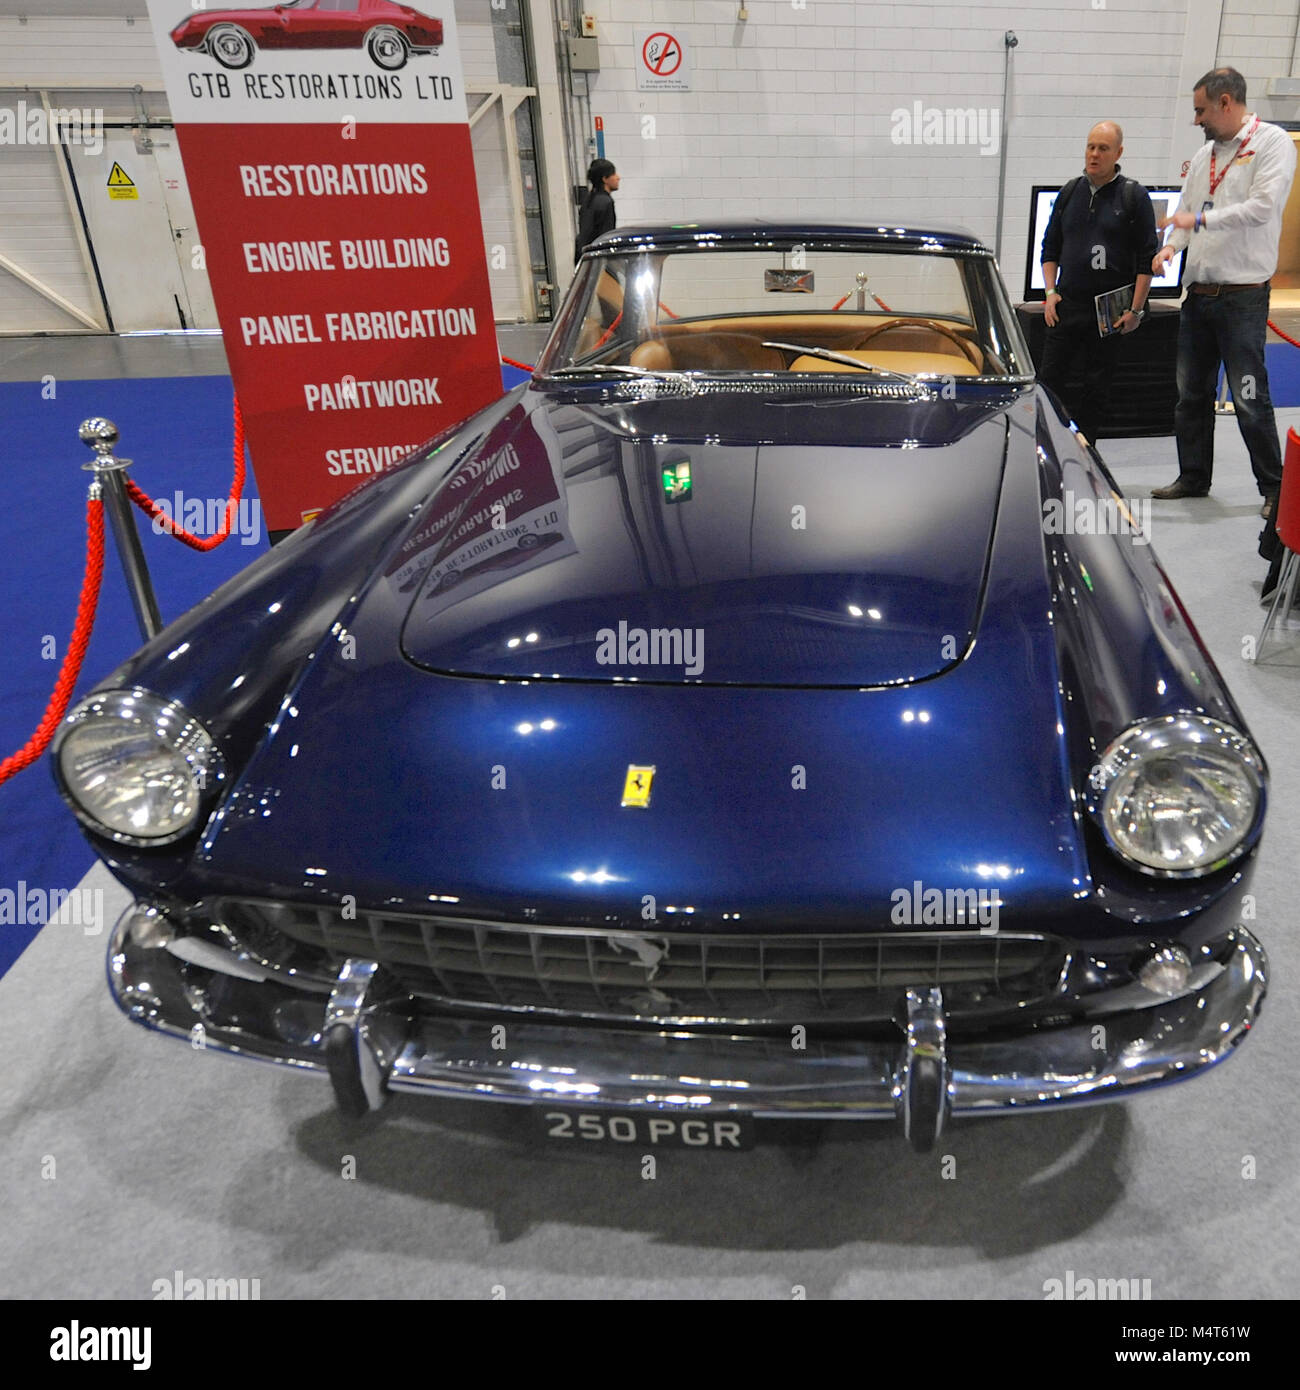 A vintage Ferrari on display at the London Classic Car Show which is ...